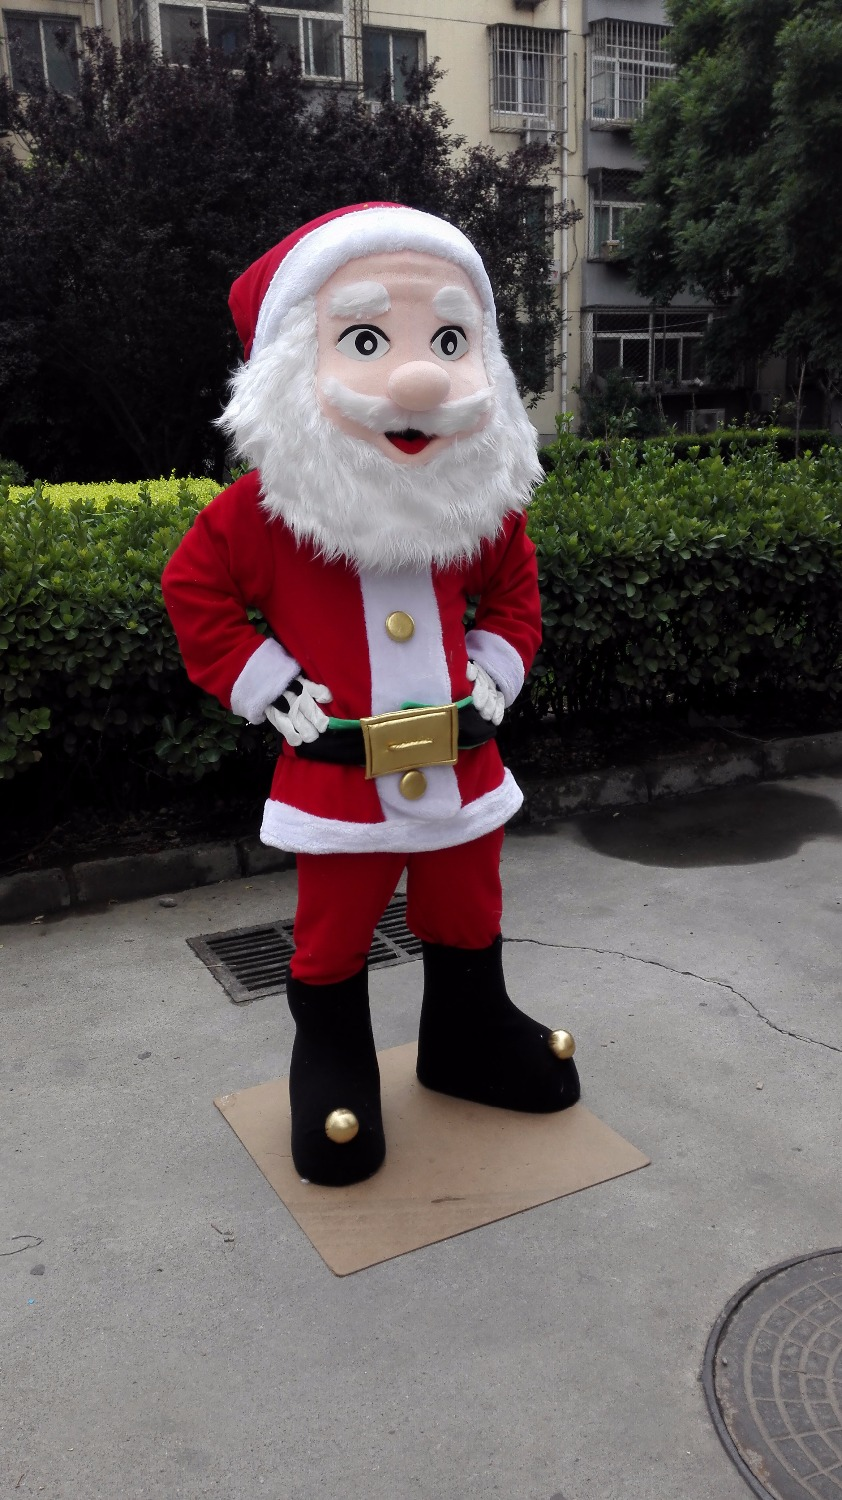 Us 218 55 7 Off Aliexpress Com Buy Santa Claus Mascot Christmas Man Mascot Costume Custom Fancy Costume Anime Cosplay Kit Mascotte Theme Fancy